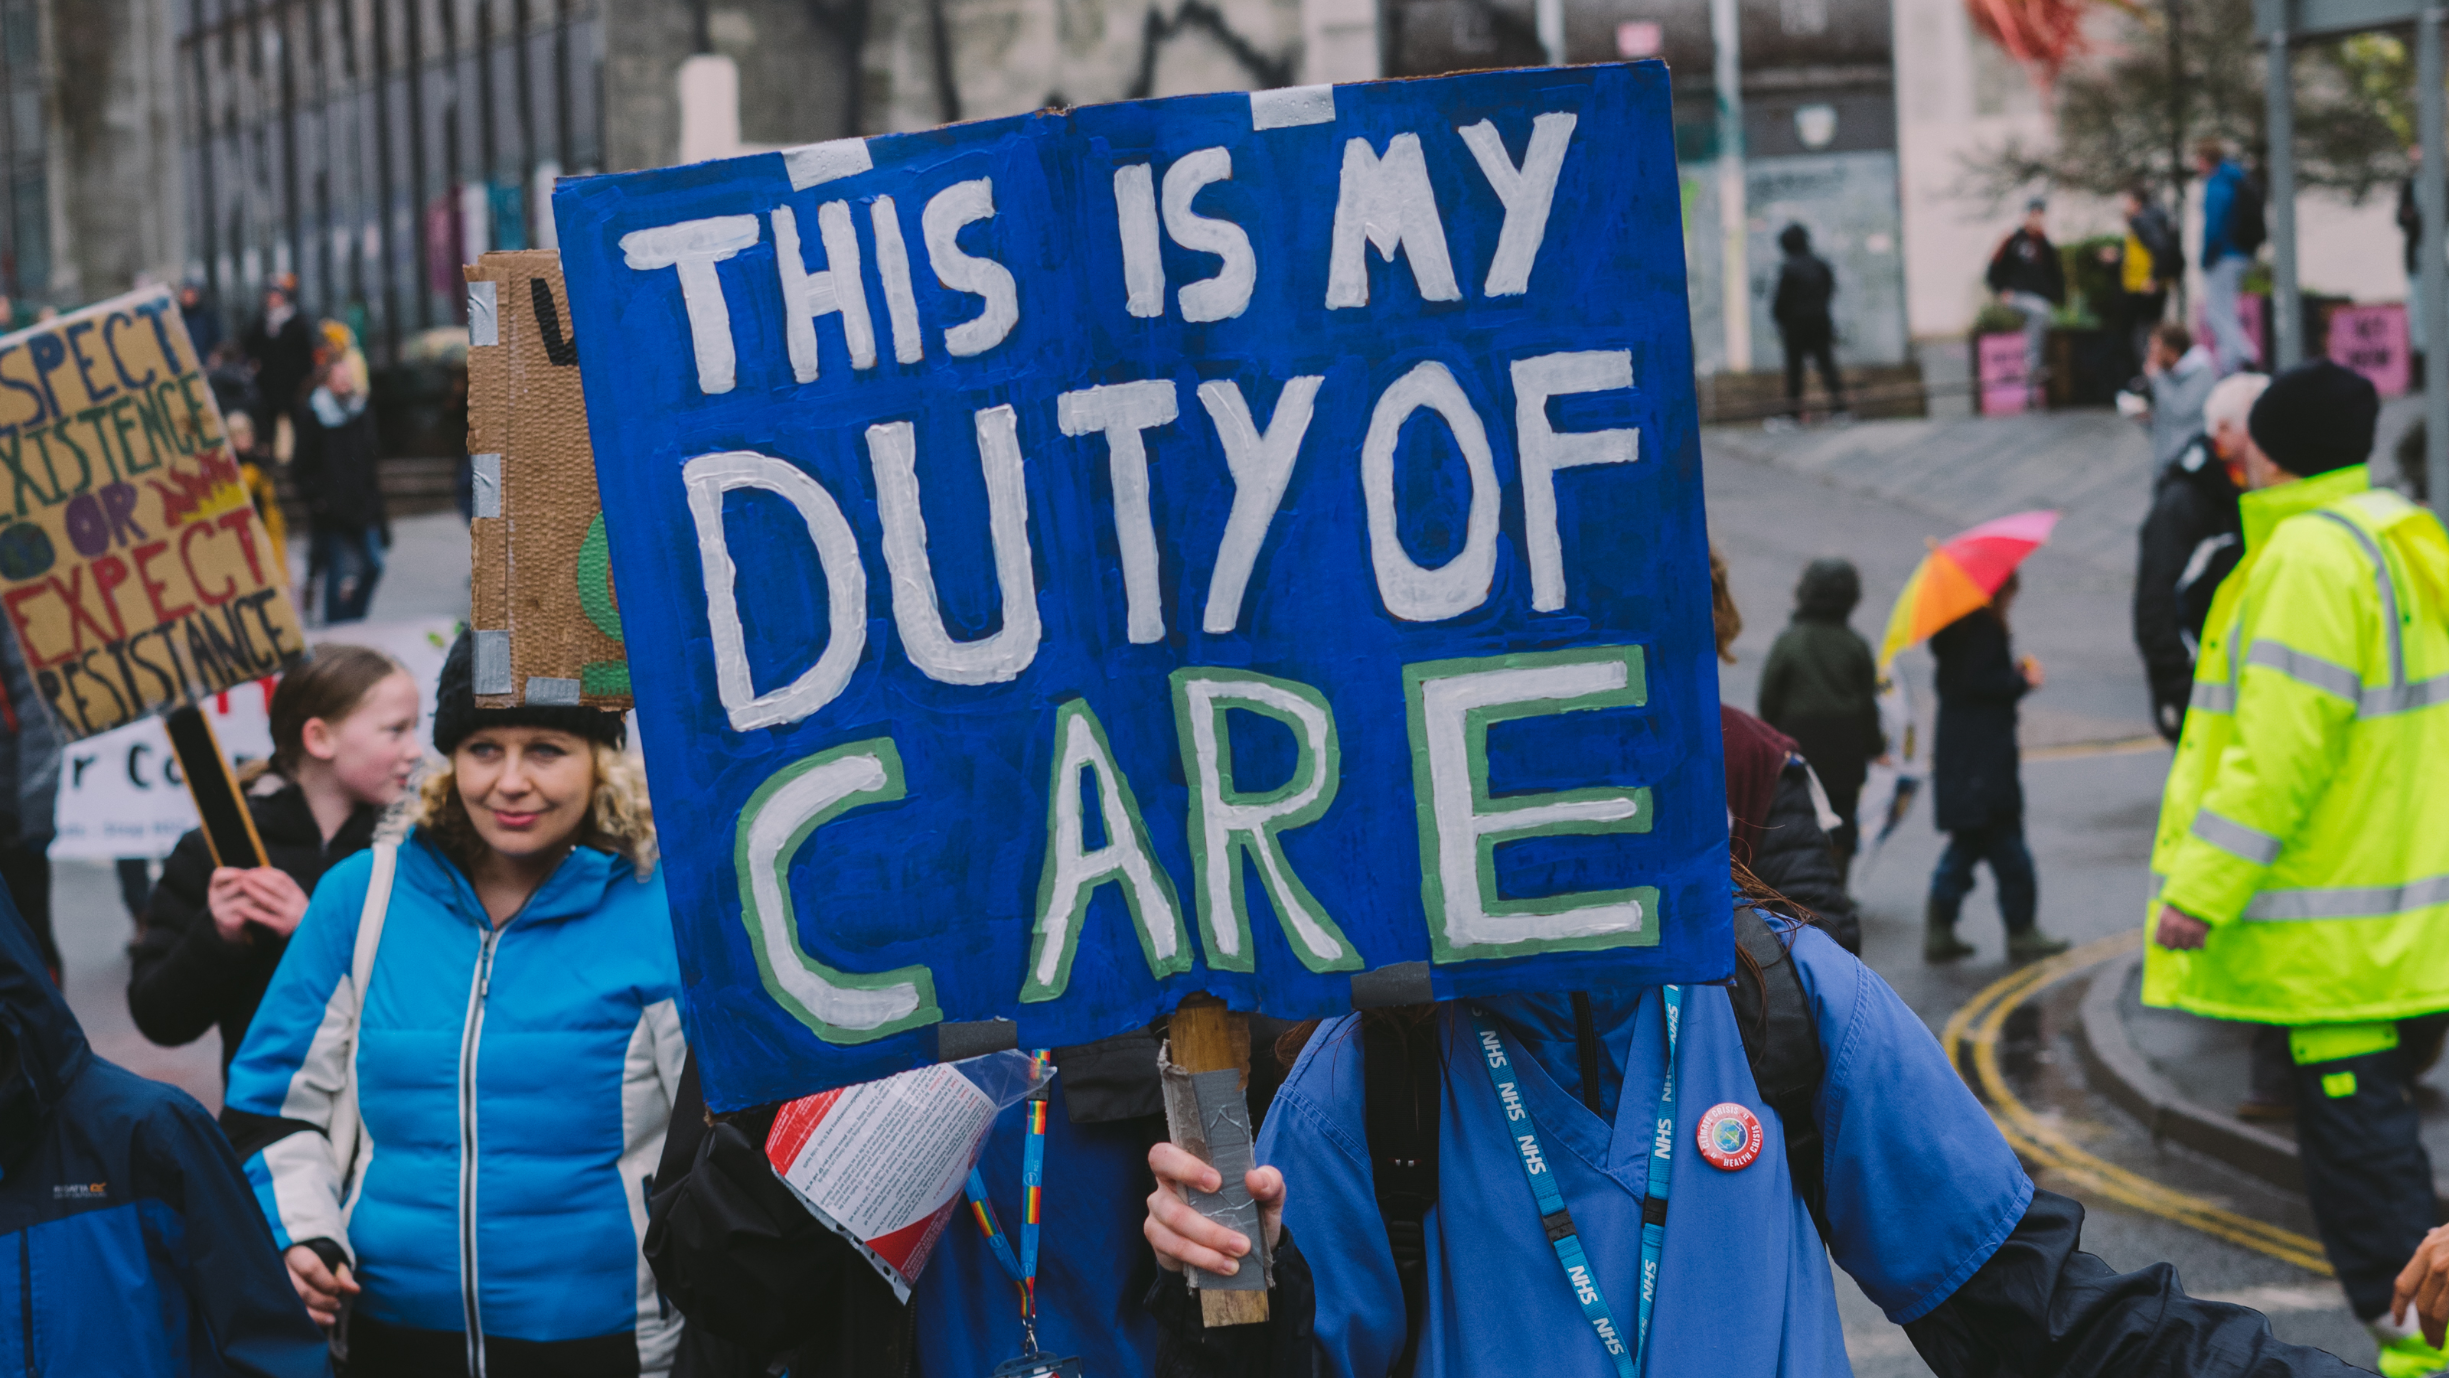 Blue activist poster with white text which reads 'This is my duty of care'